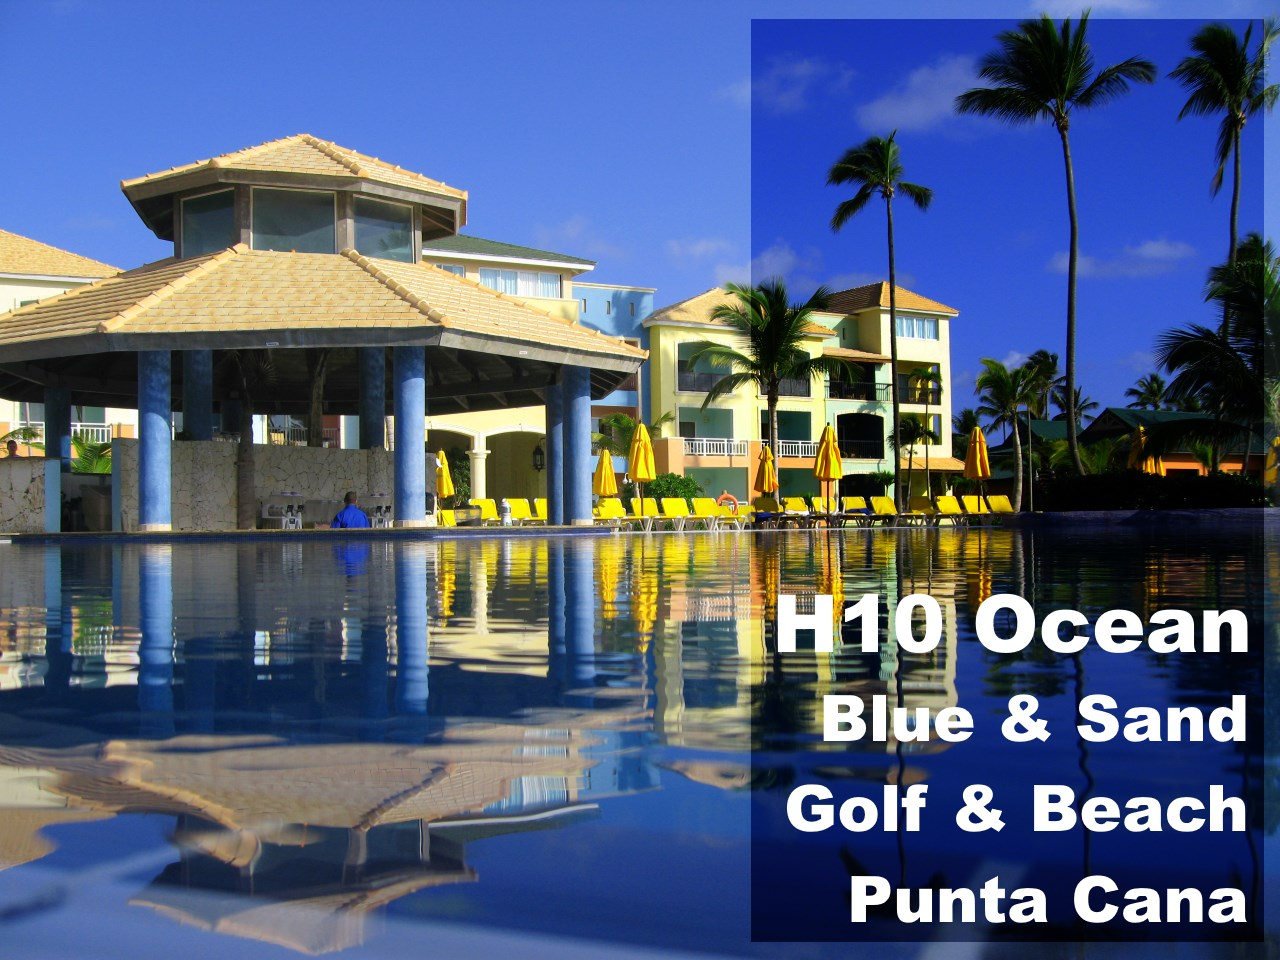 Ocean Sand Beach And Golf Resort Punta Cana